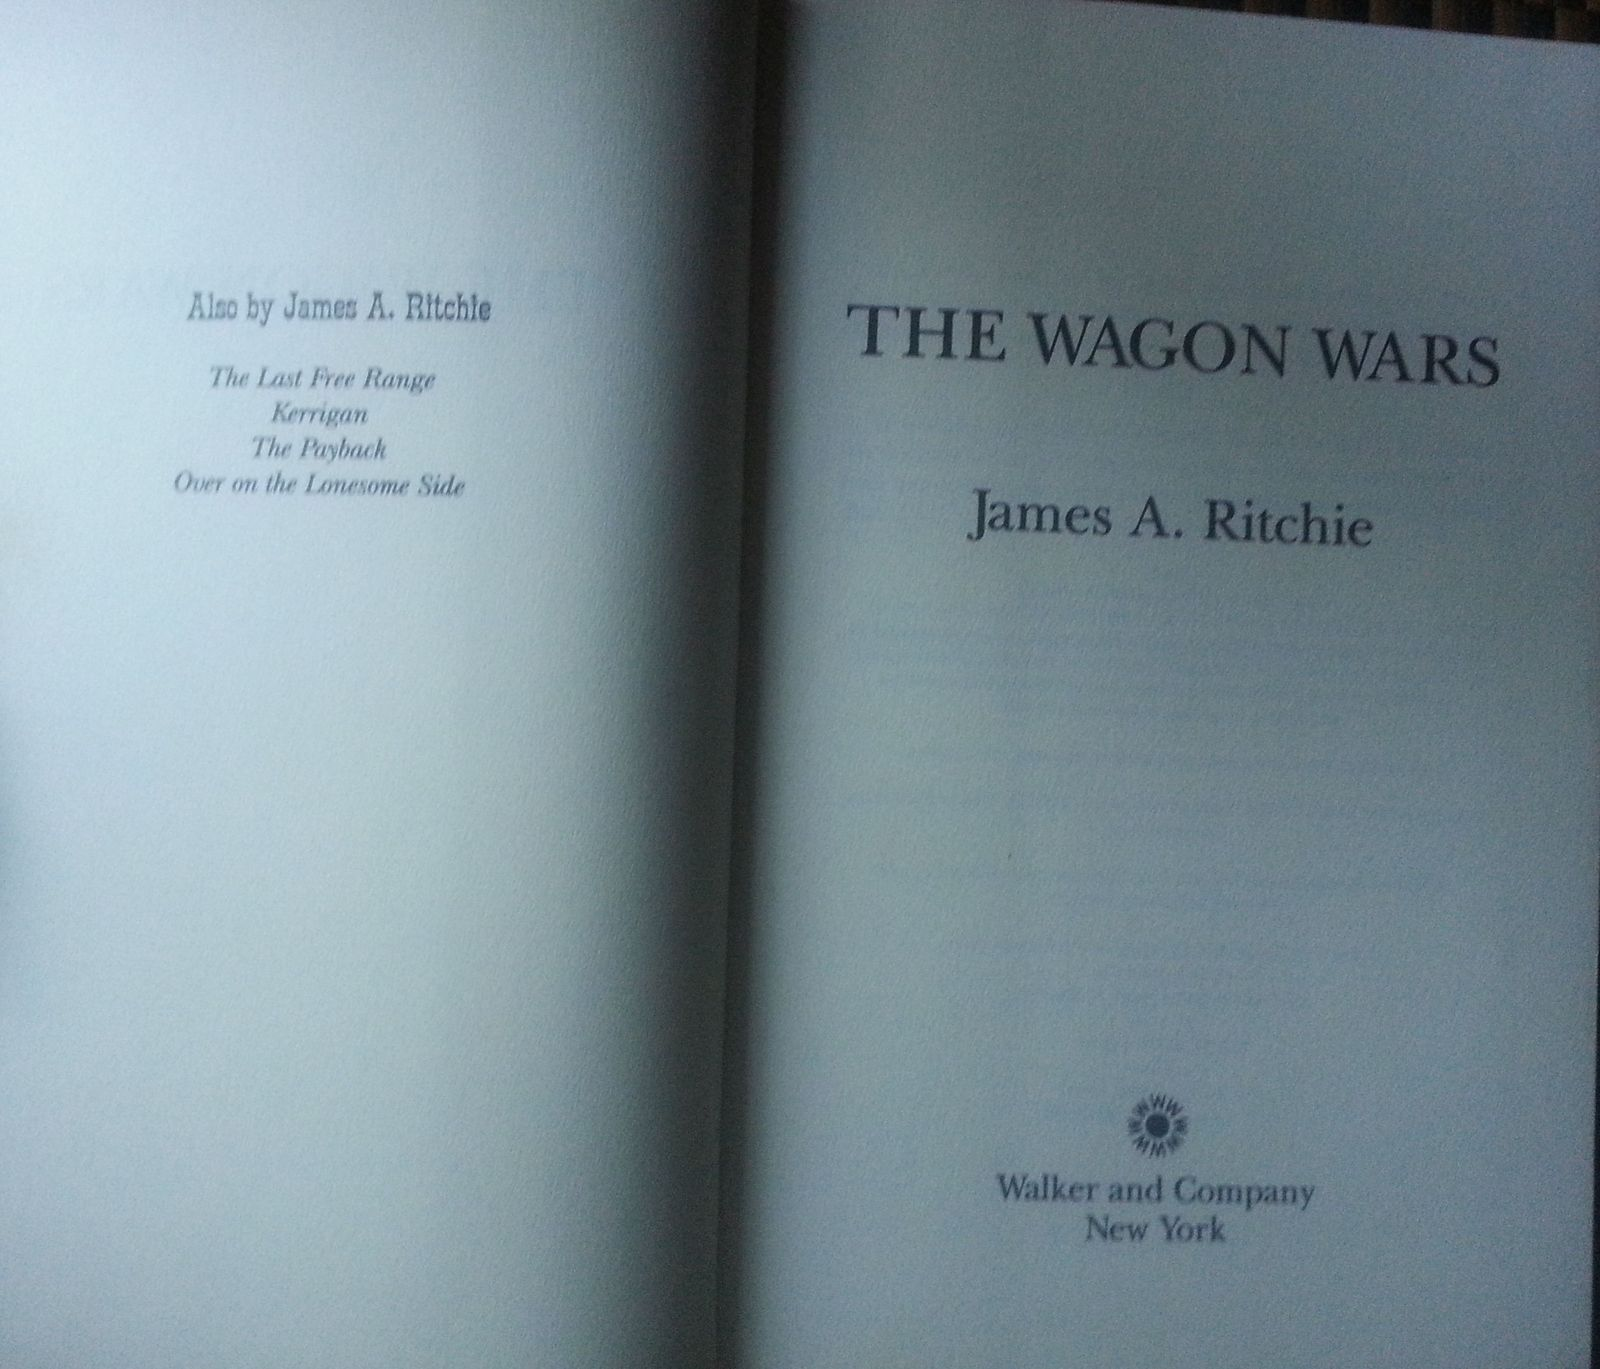 The Wagon Wars by James A. Ritchie 1997 HBDJ Western